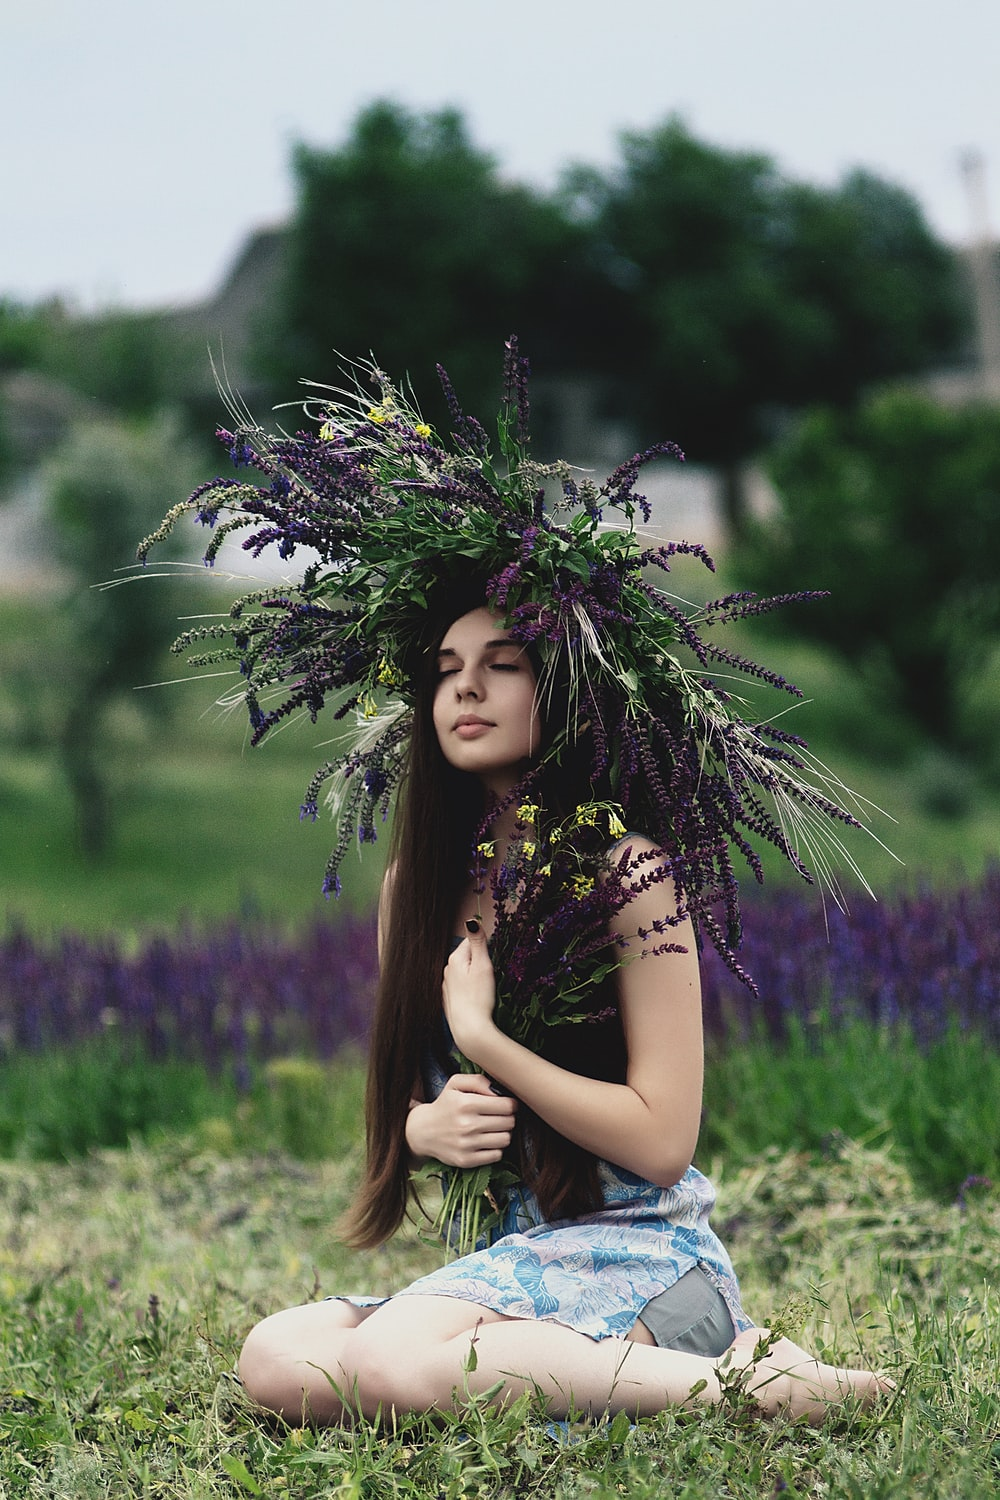 woman wearing lavender headdress sitting on grass